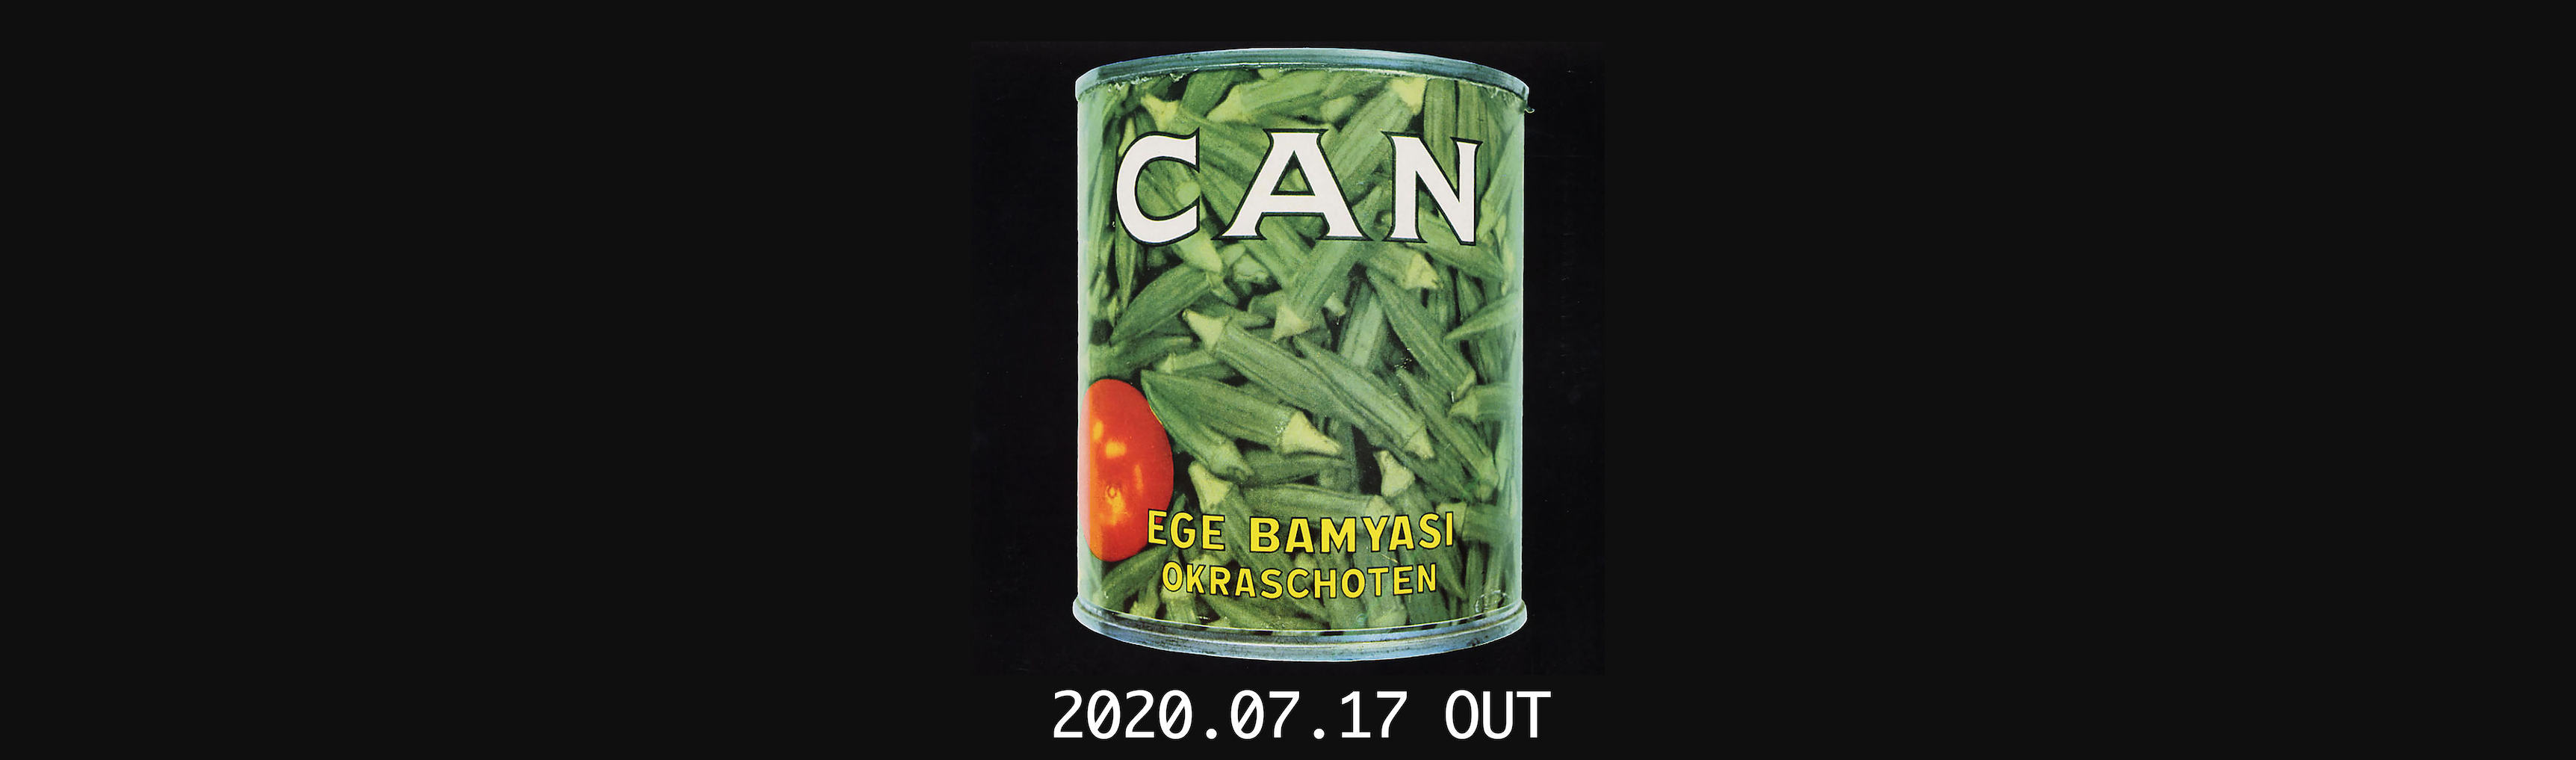 HP-CAN-01